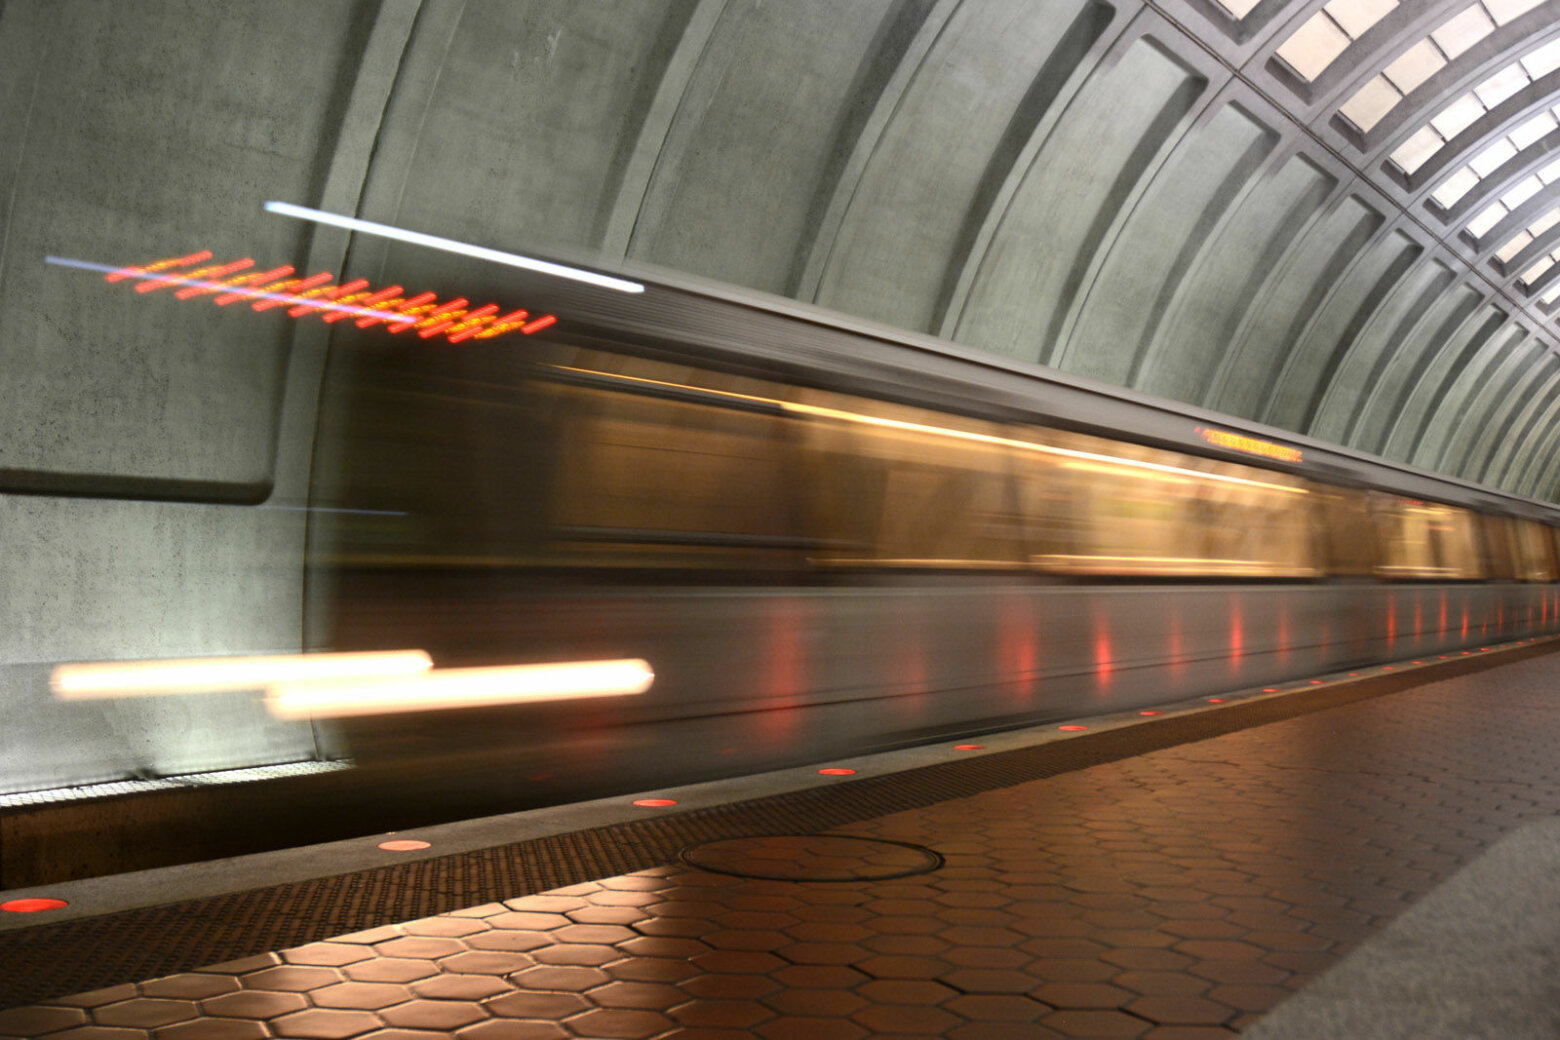 Metro safety reports reveal wrong-way train, man falling onto tracks